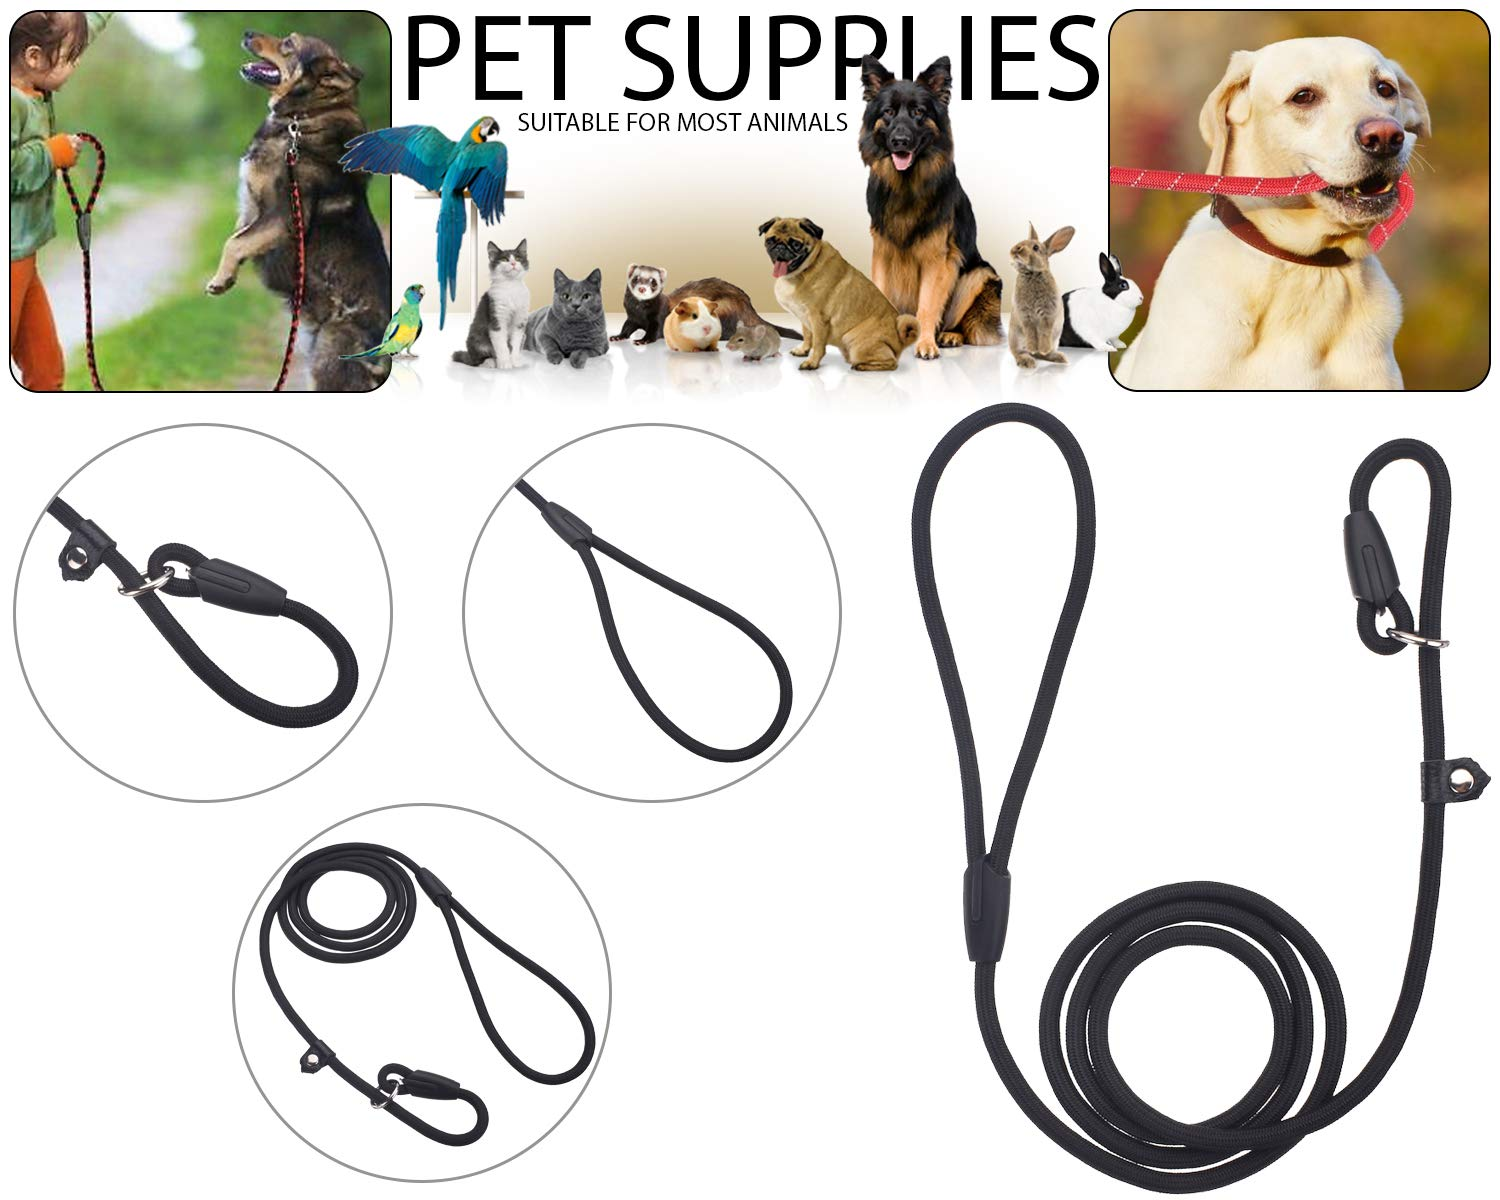 BisLinks Chiot Chien Pet Lead Slip on Rope Leash Chiot Training Fort Nylon No Collar Needed Bleu 8mm Width